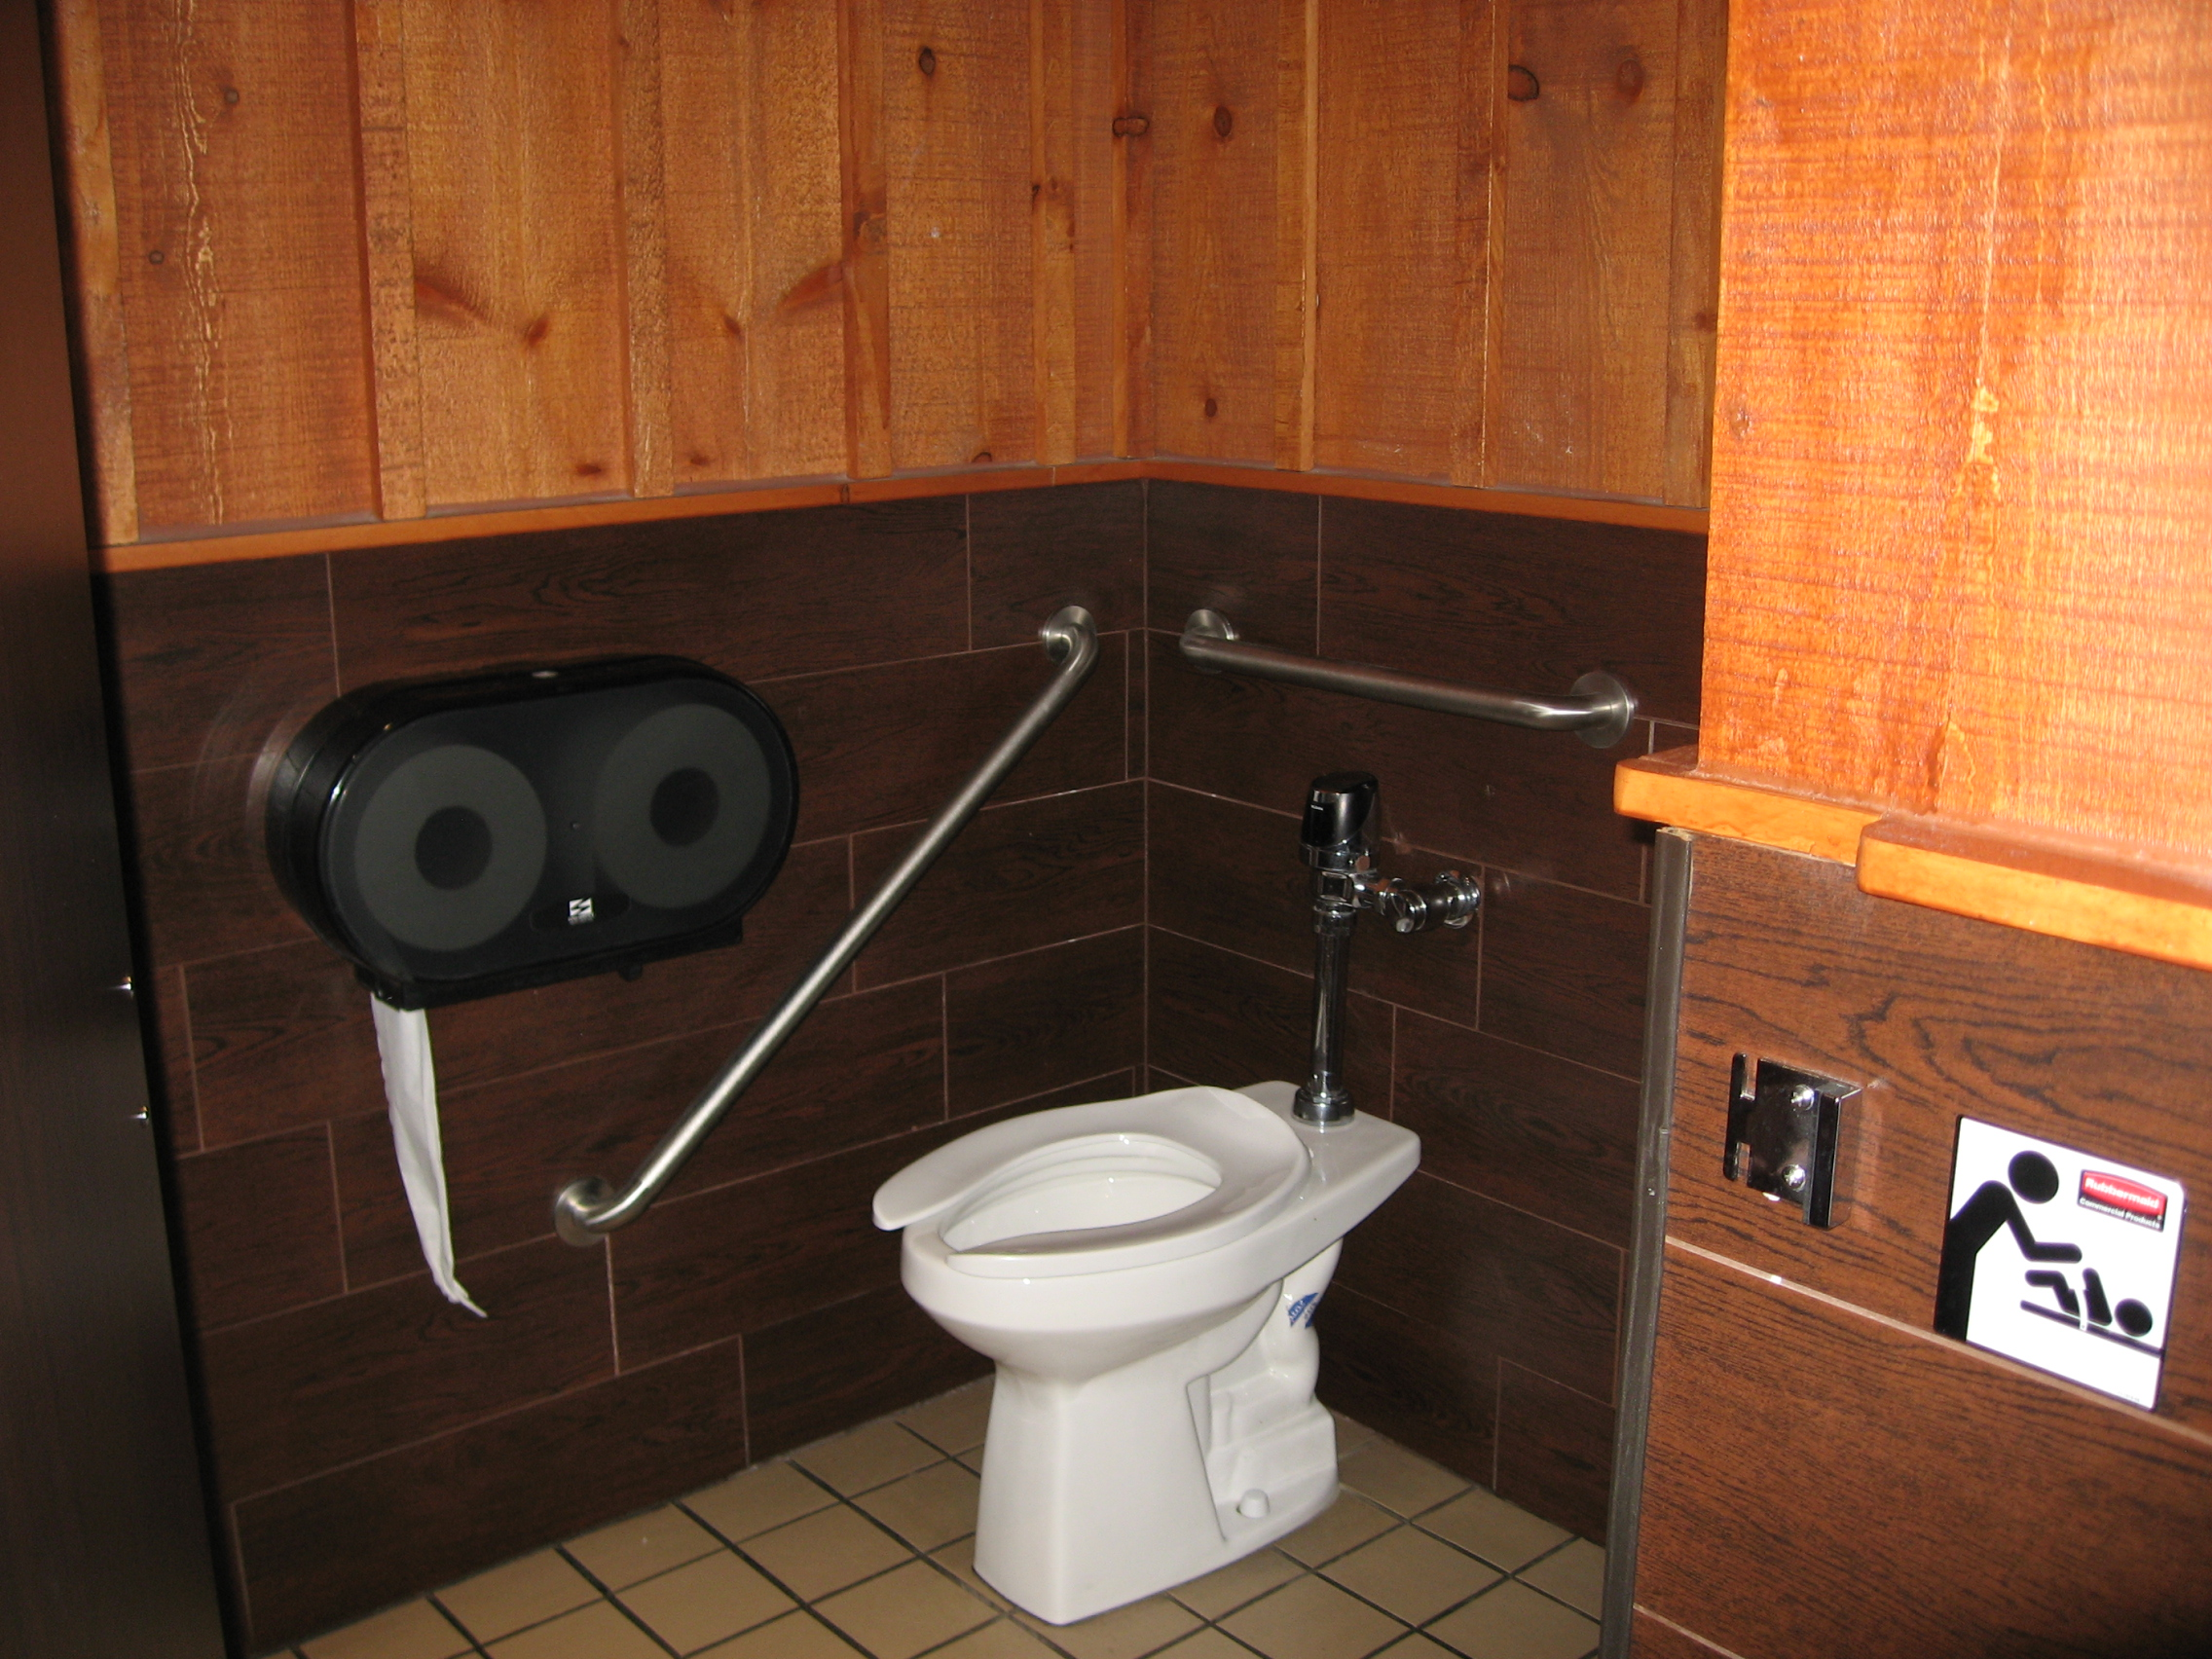 Picture of accessible rest room.